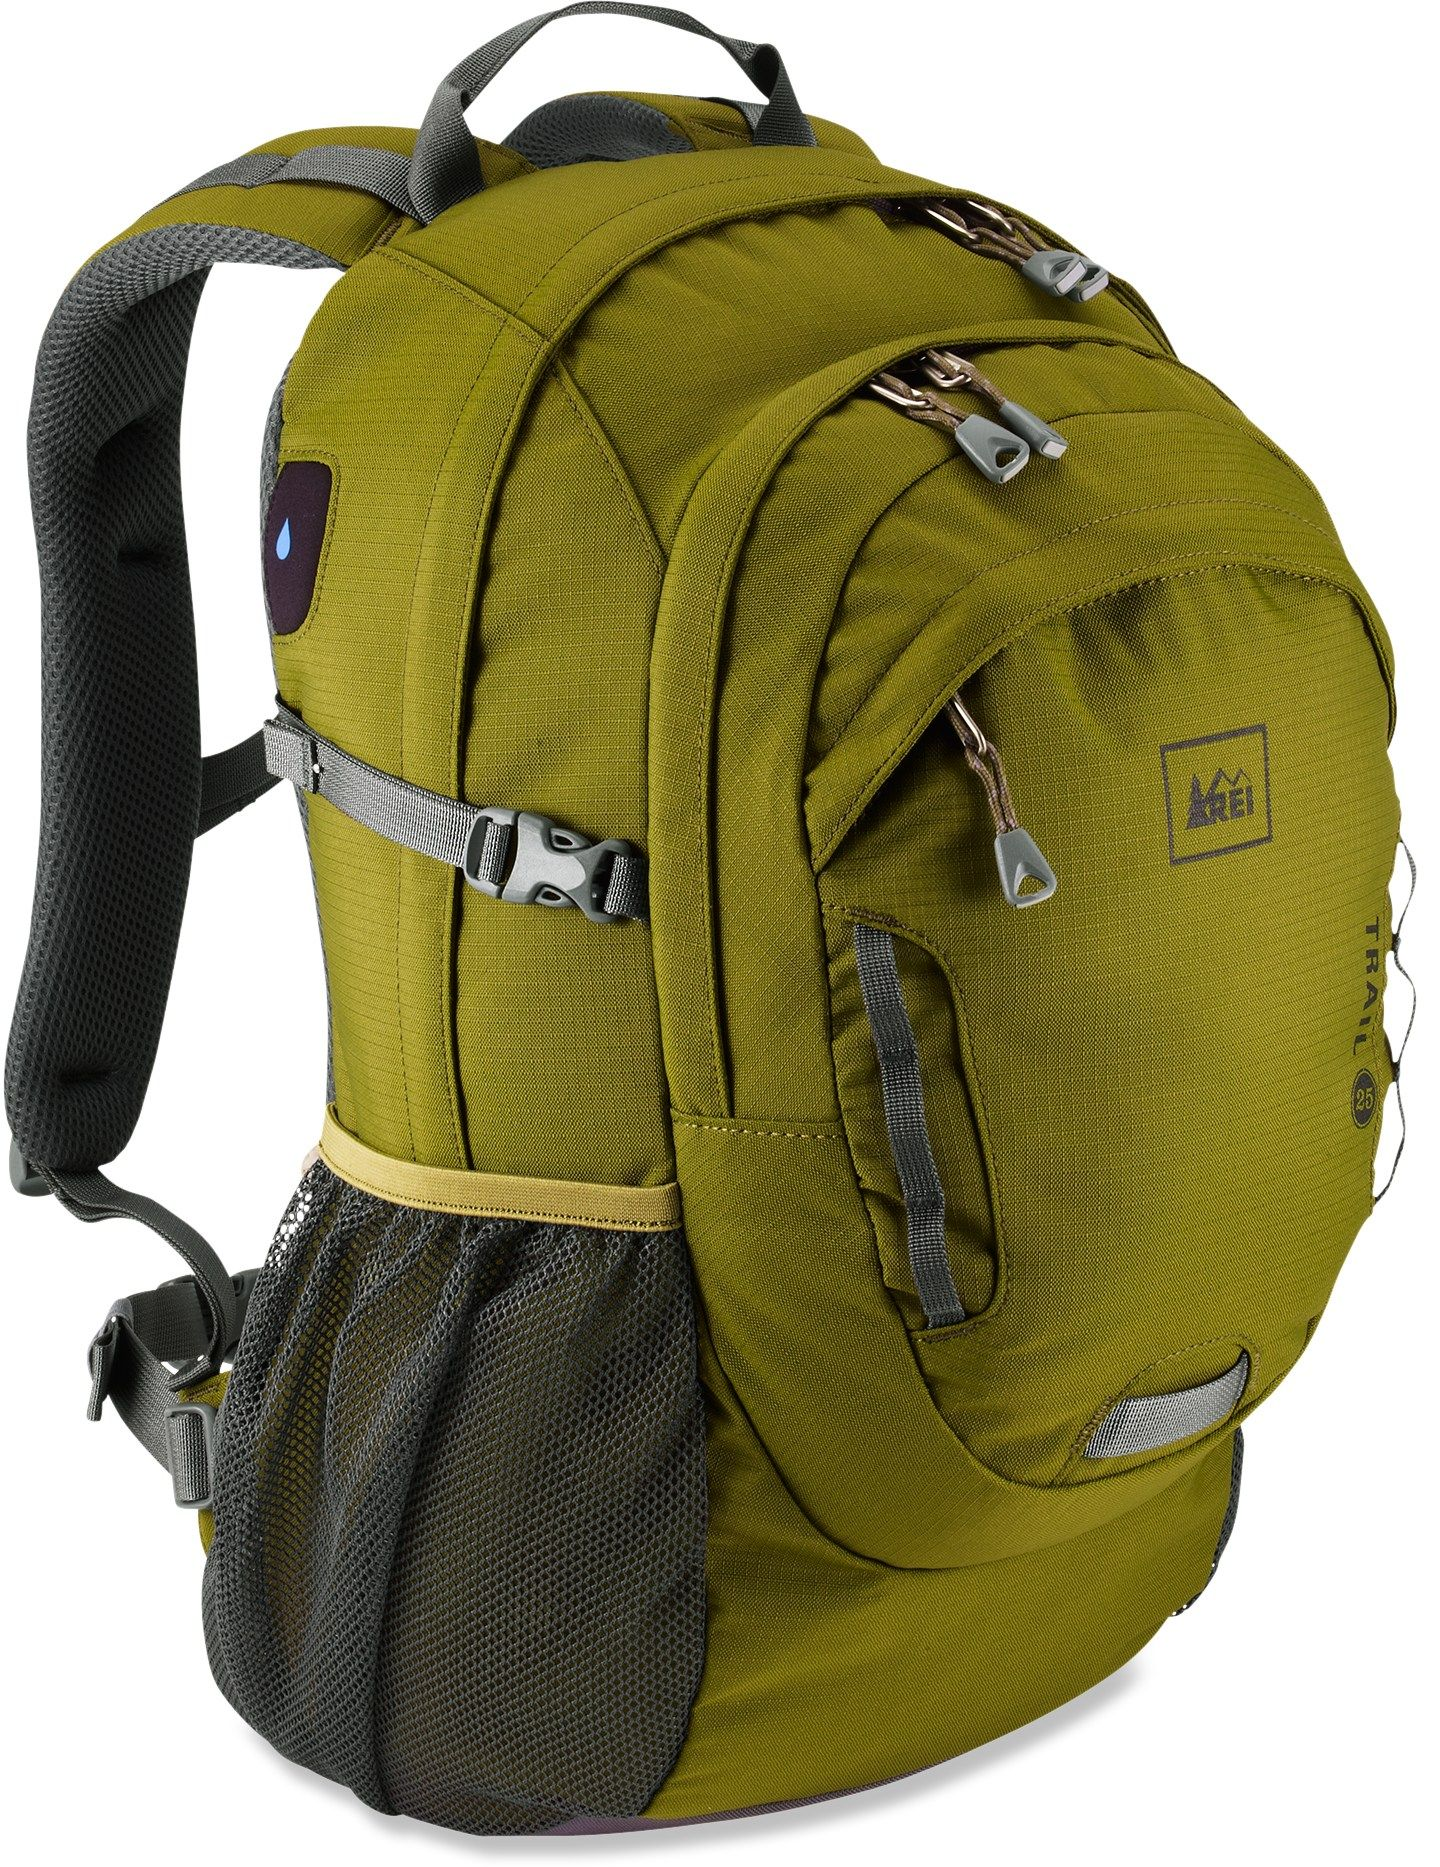 REI Trail 25 Pack ($59.50)